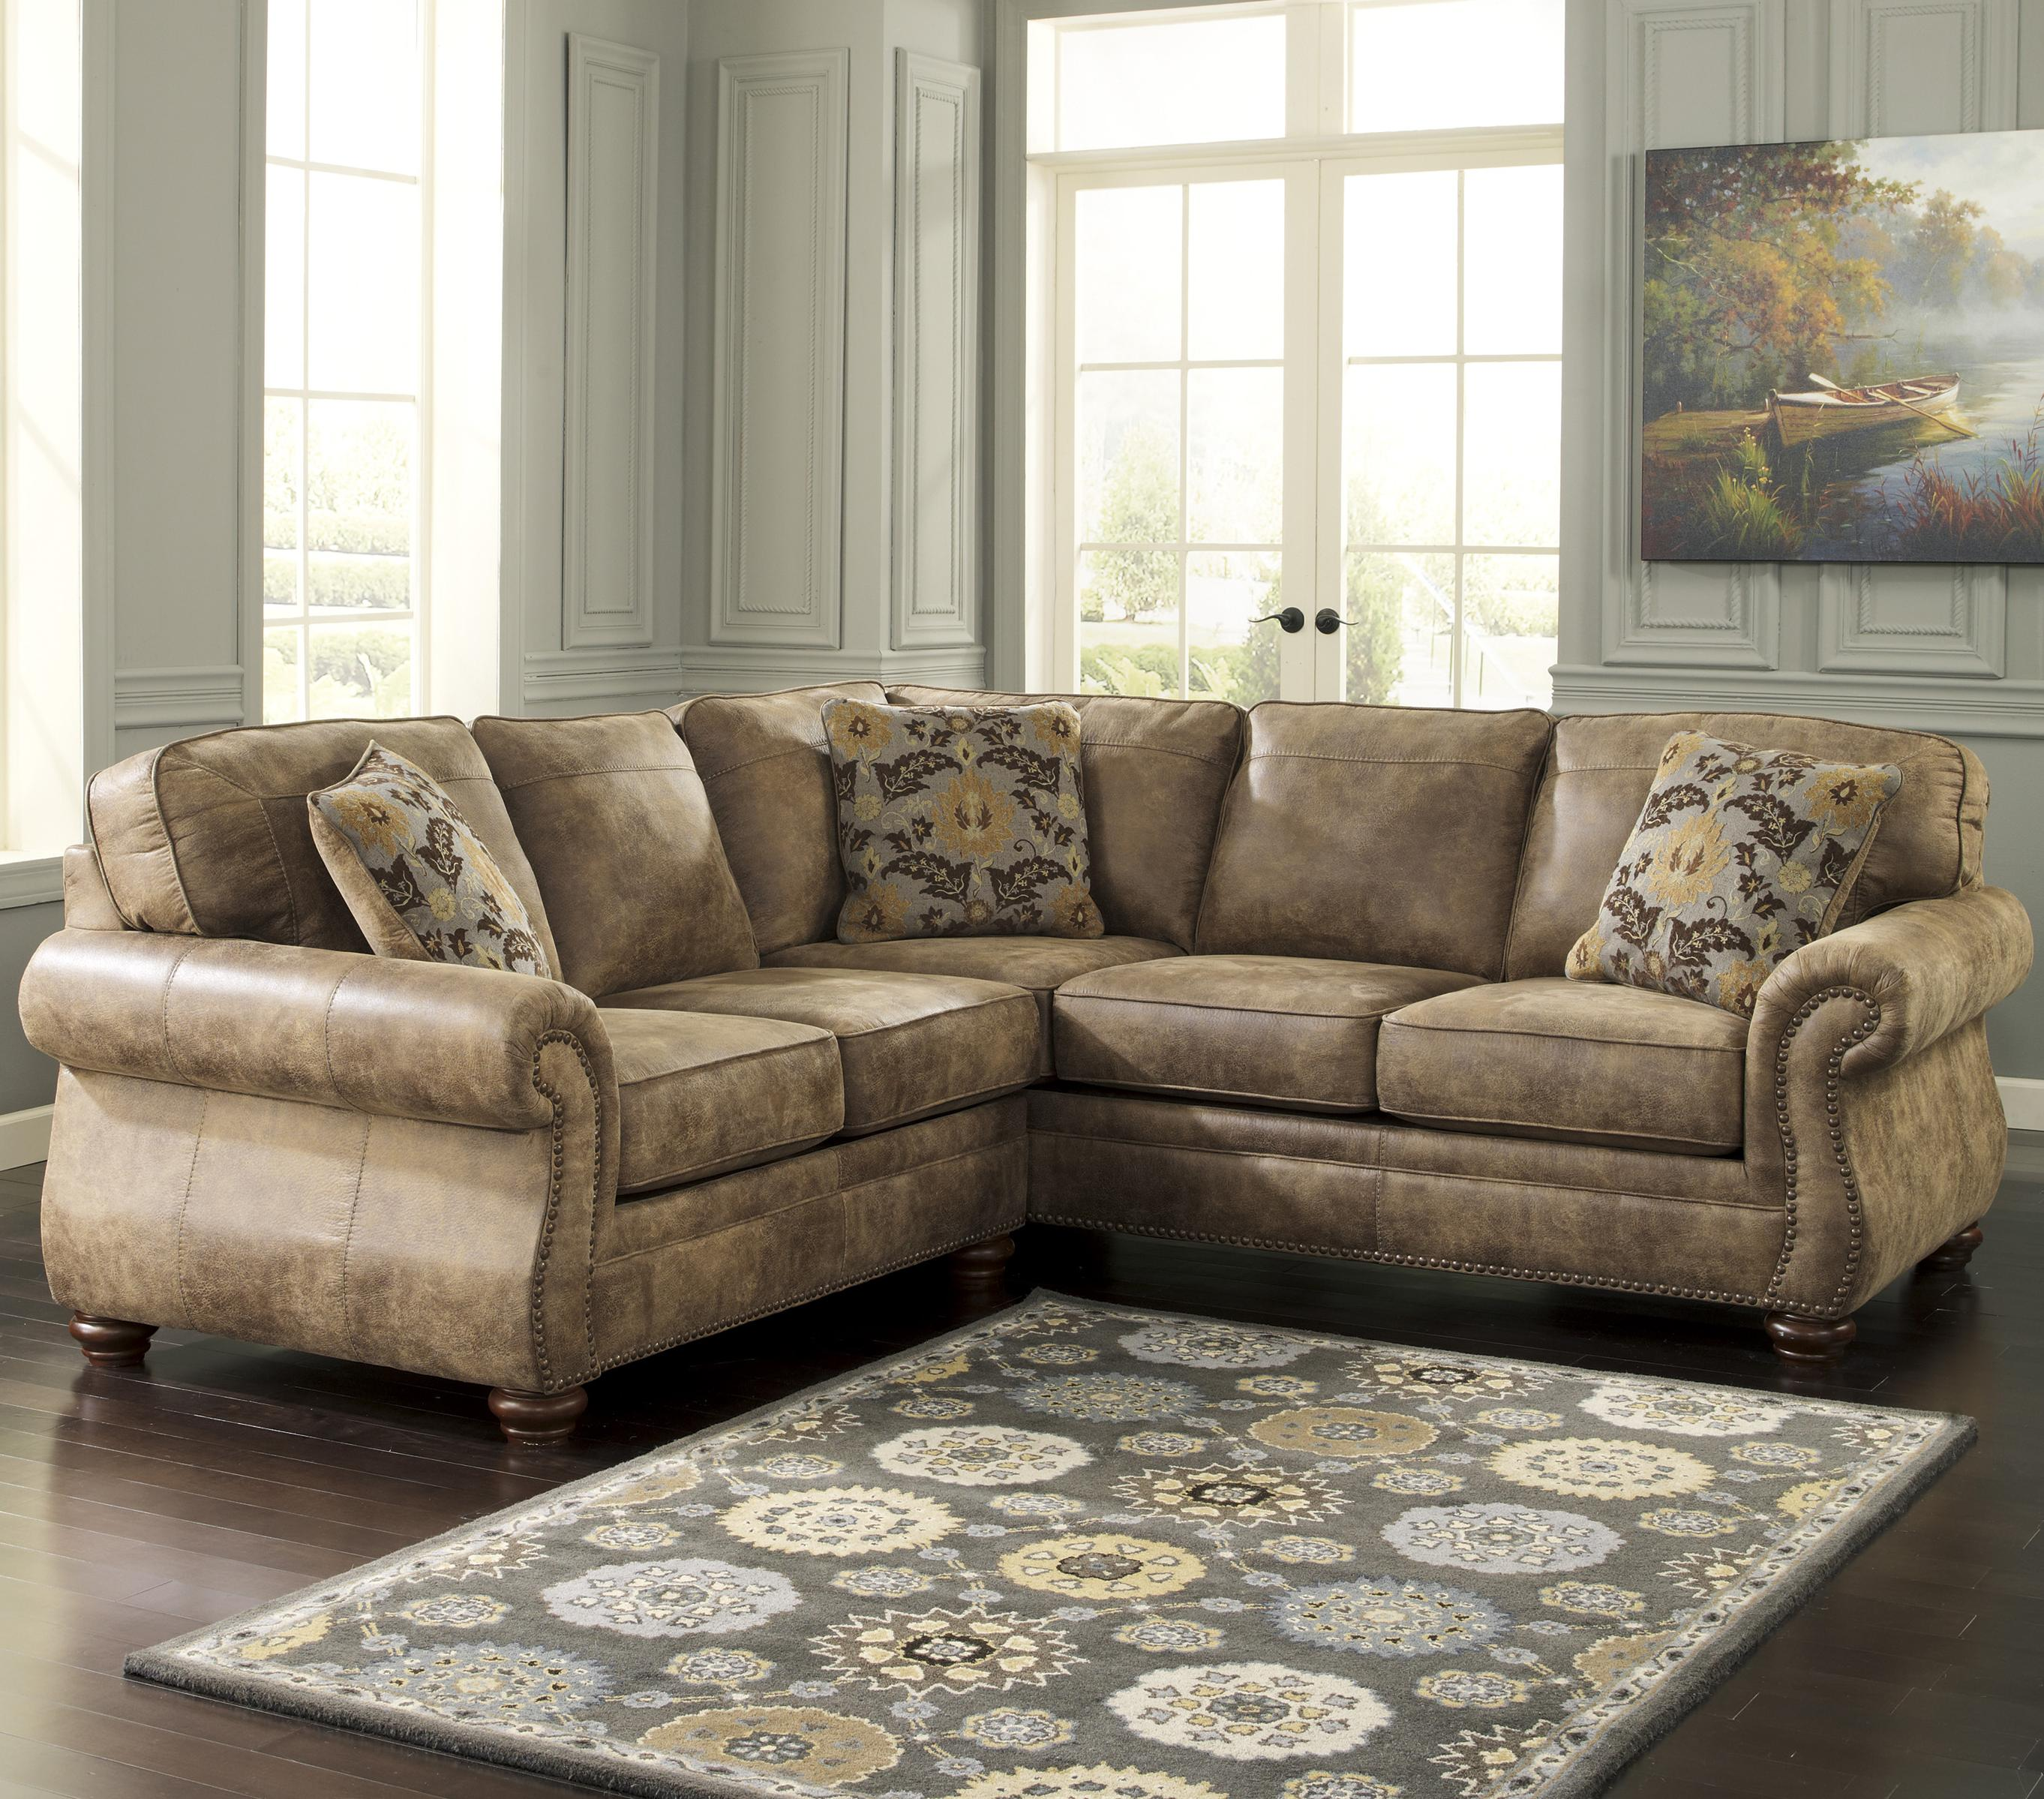 Signature Design By Ashley Larkinhurst Earth Traditional Roll Arm Corner Sectional Furniture